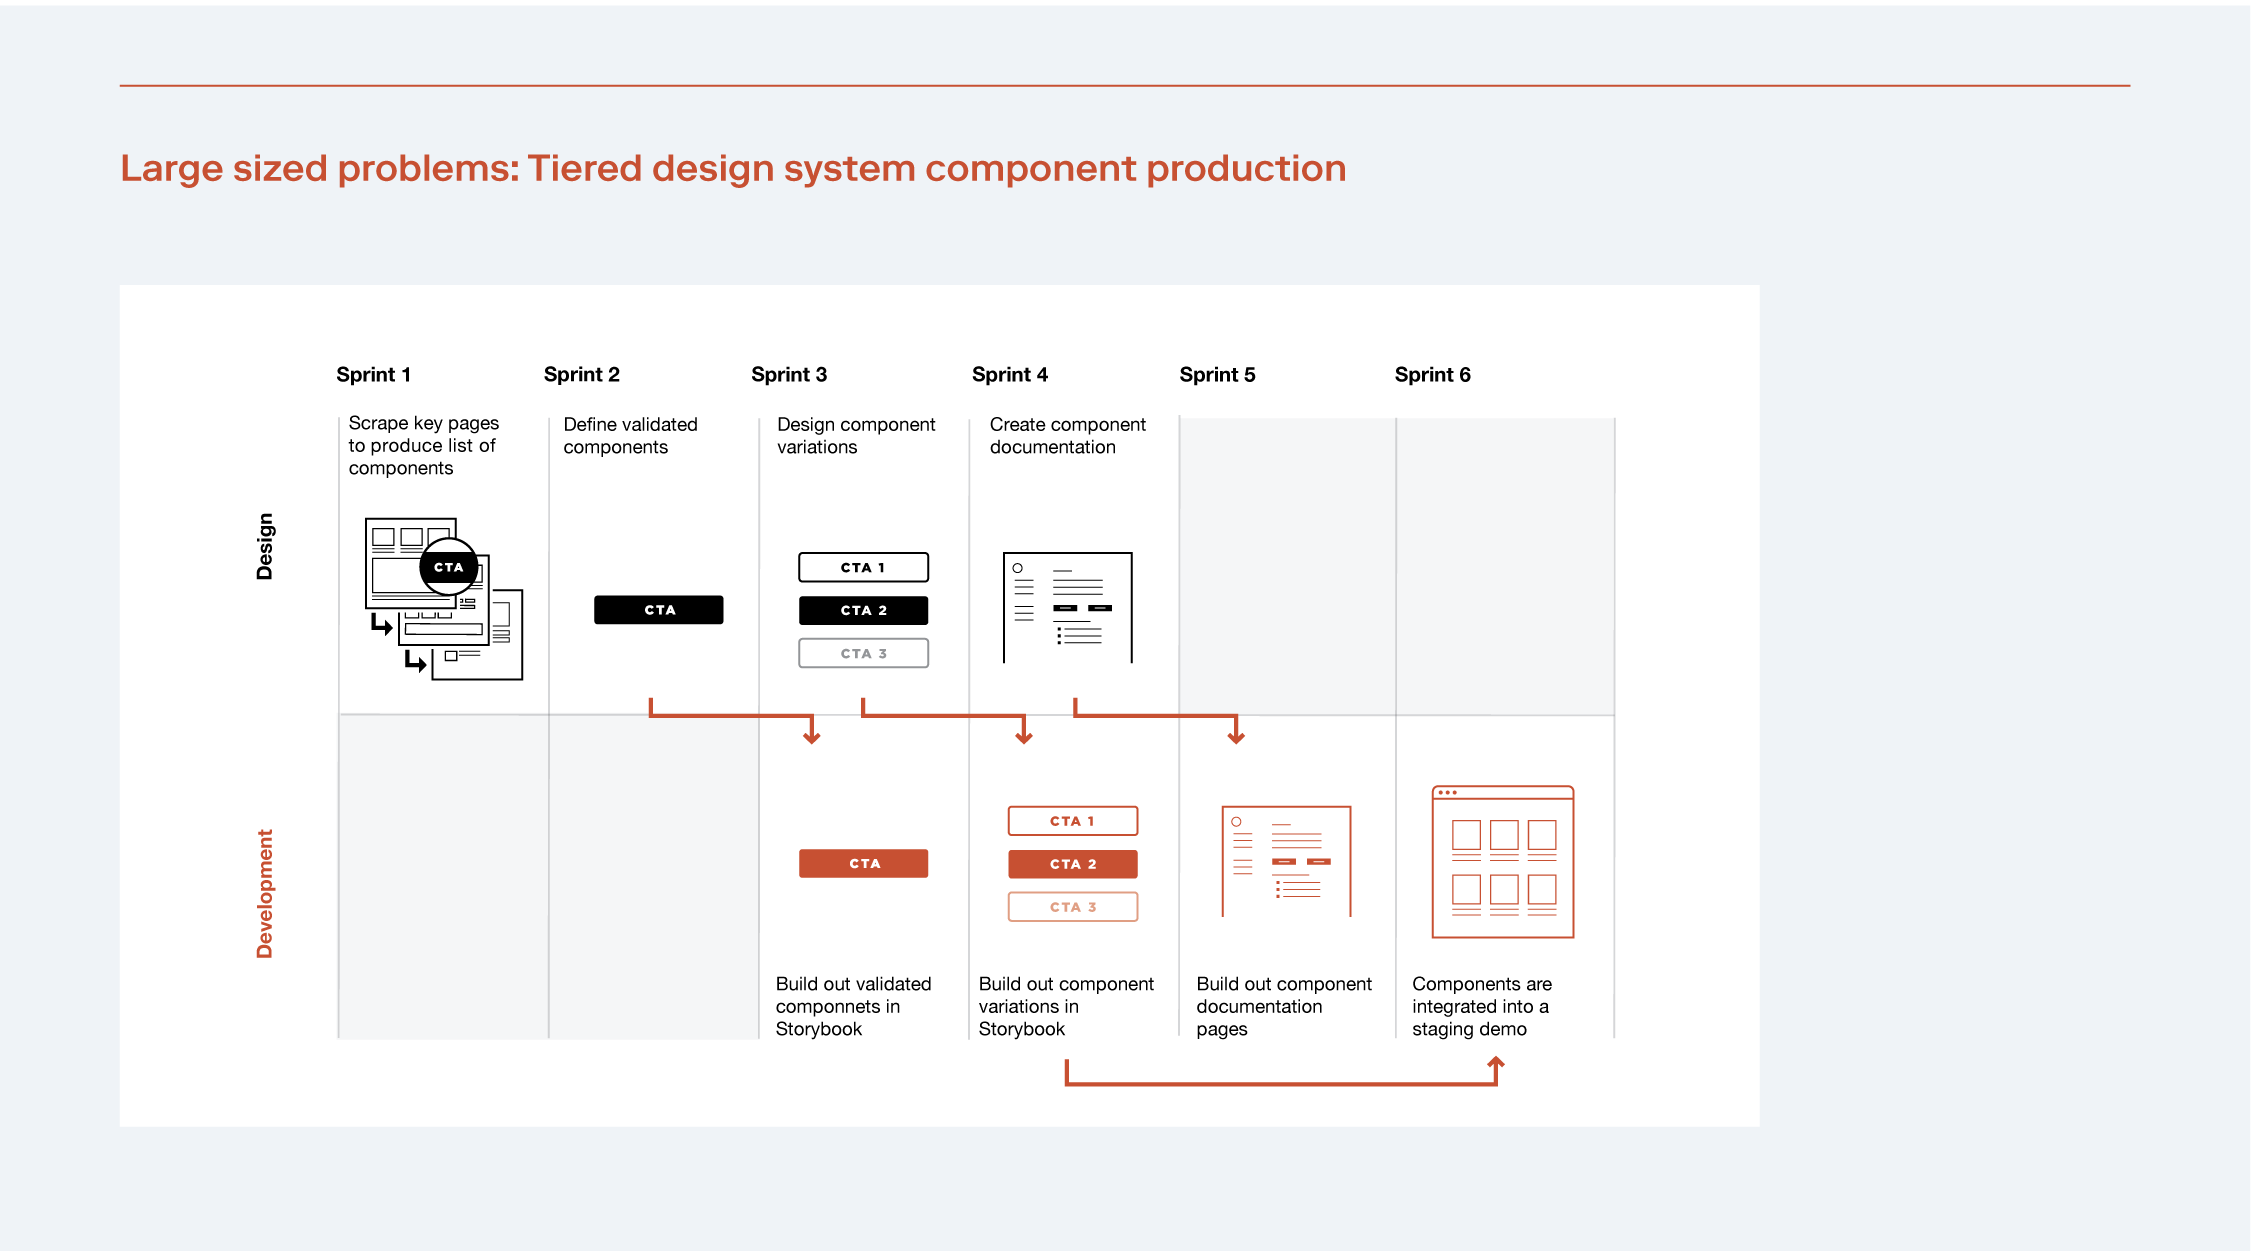 Workflow for creating design system components for large, tiered teams and large problems